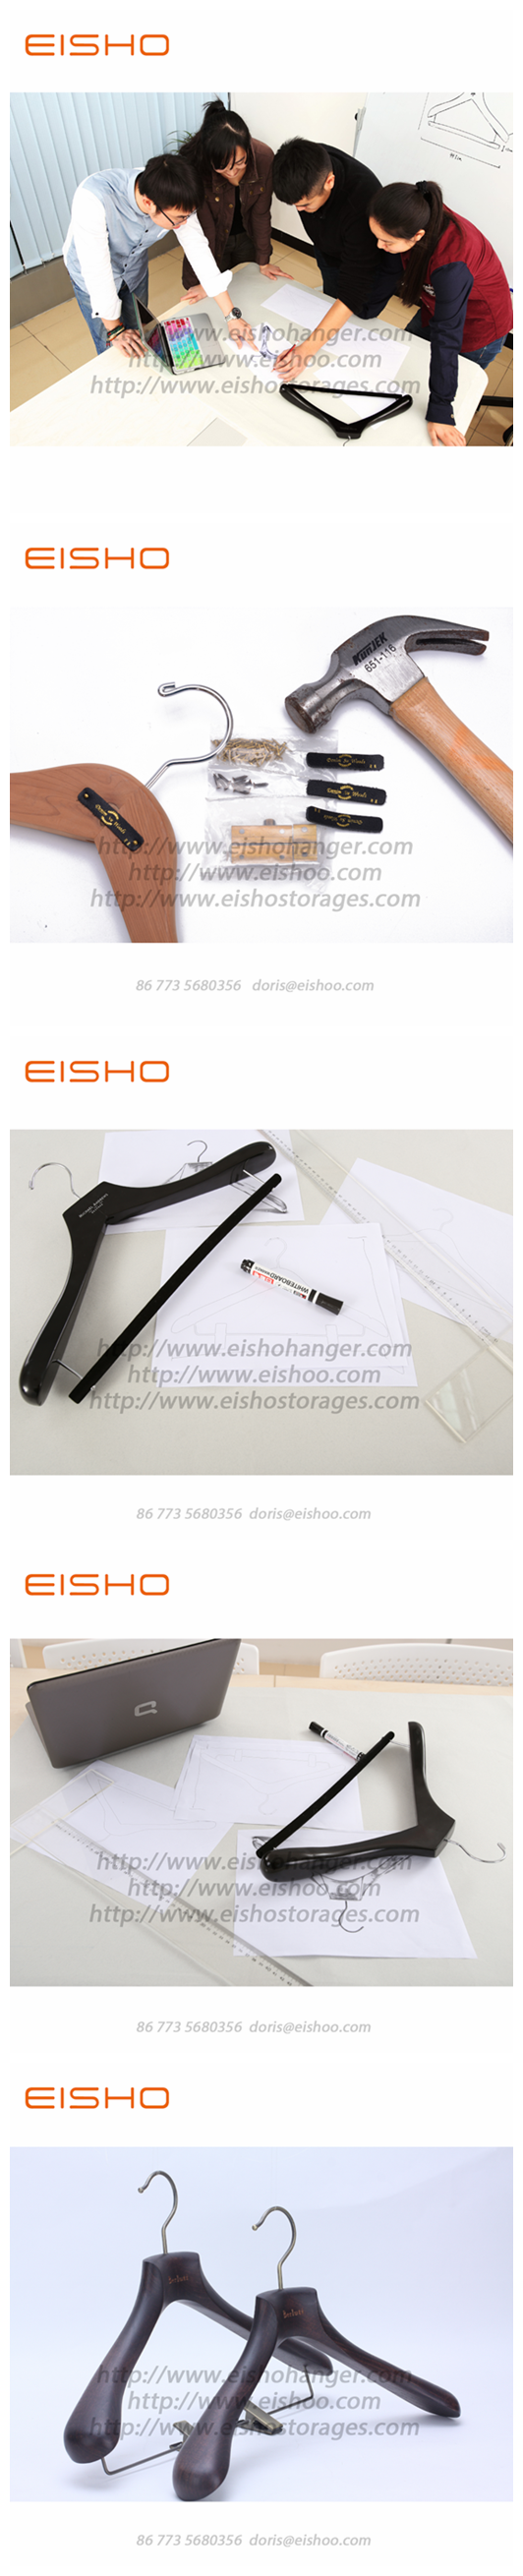 EISHO-design-team-clothes-hangers-factory-supplier